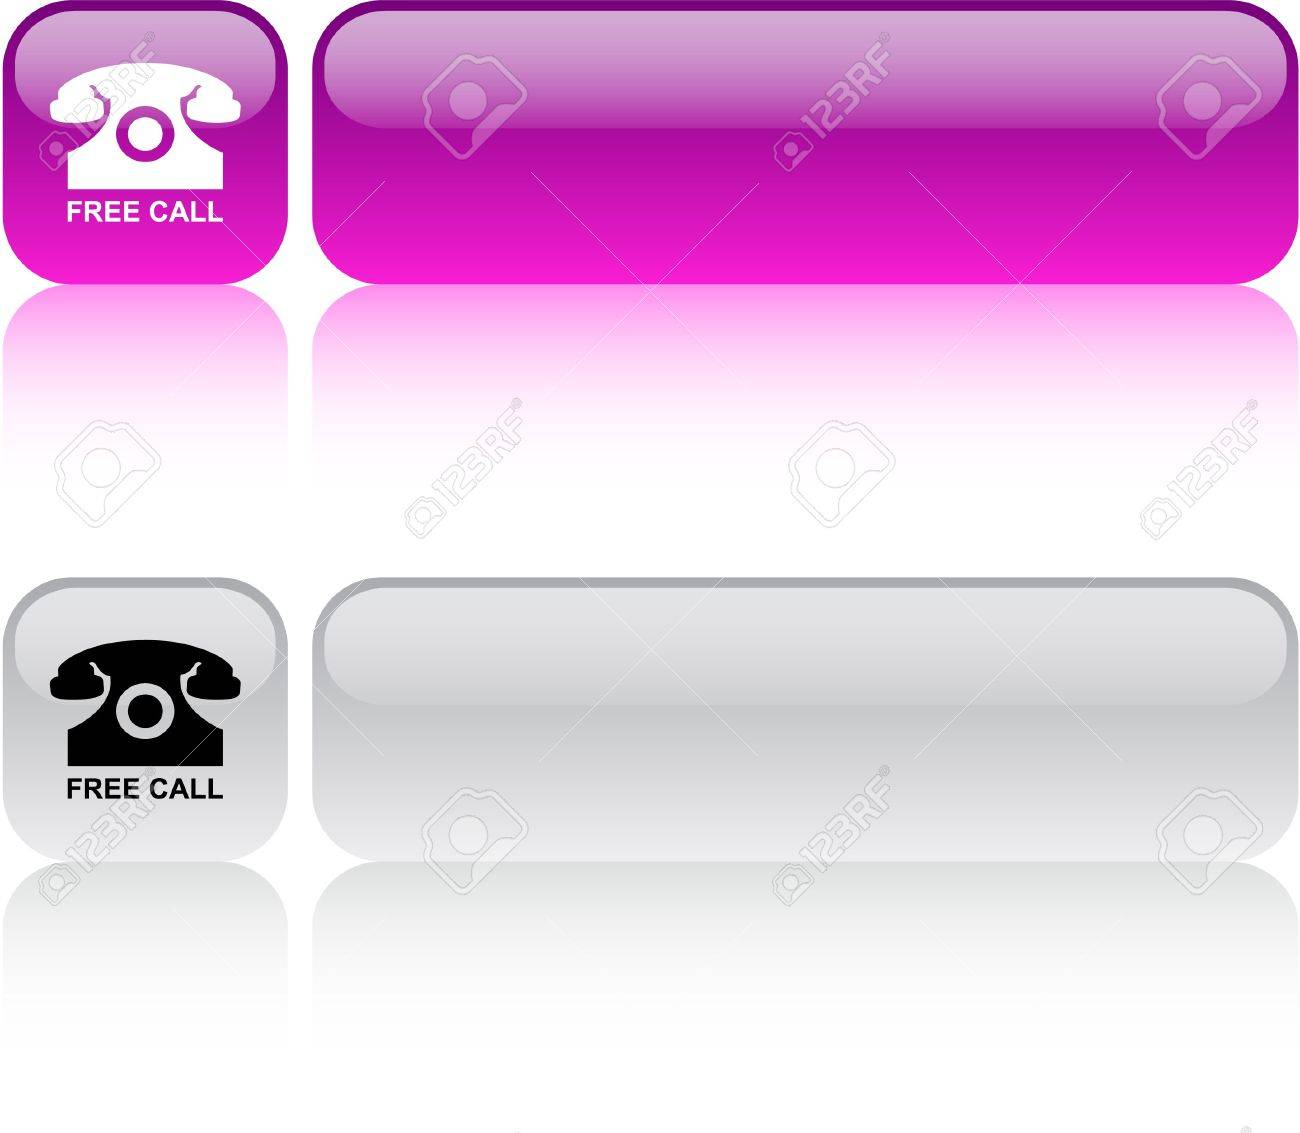 Free call  glossy square web buttons. Stock Vector - 7436839